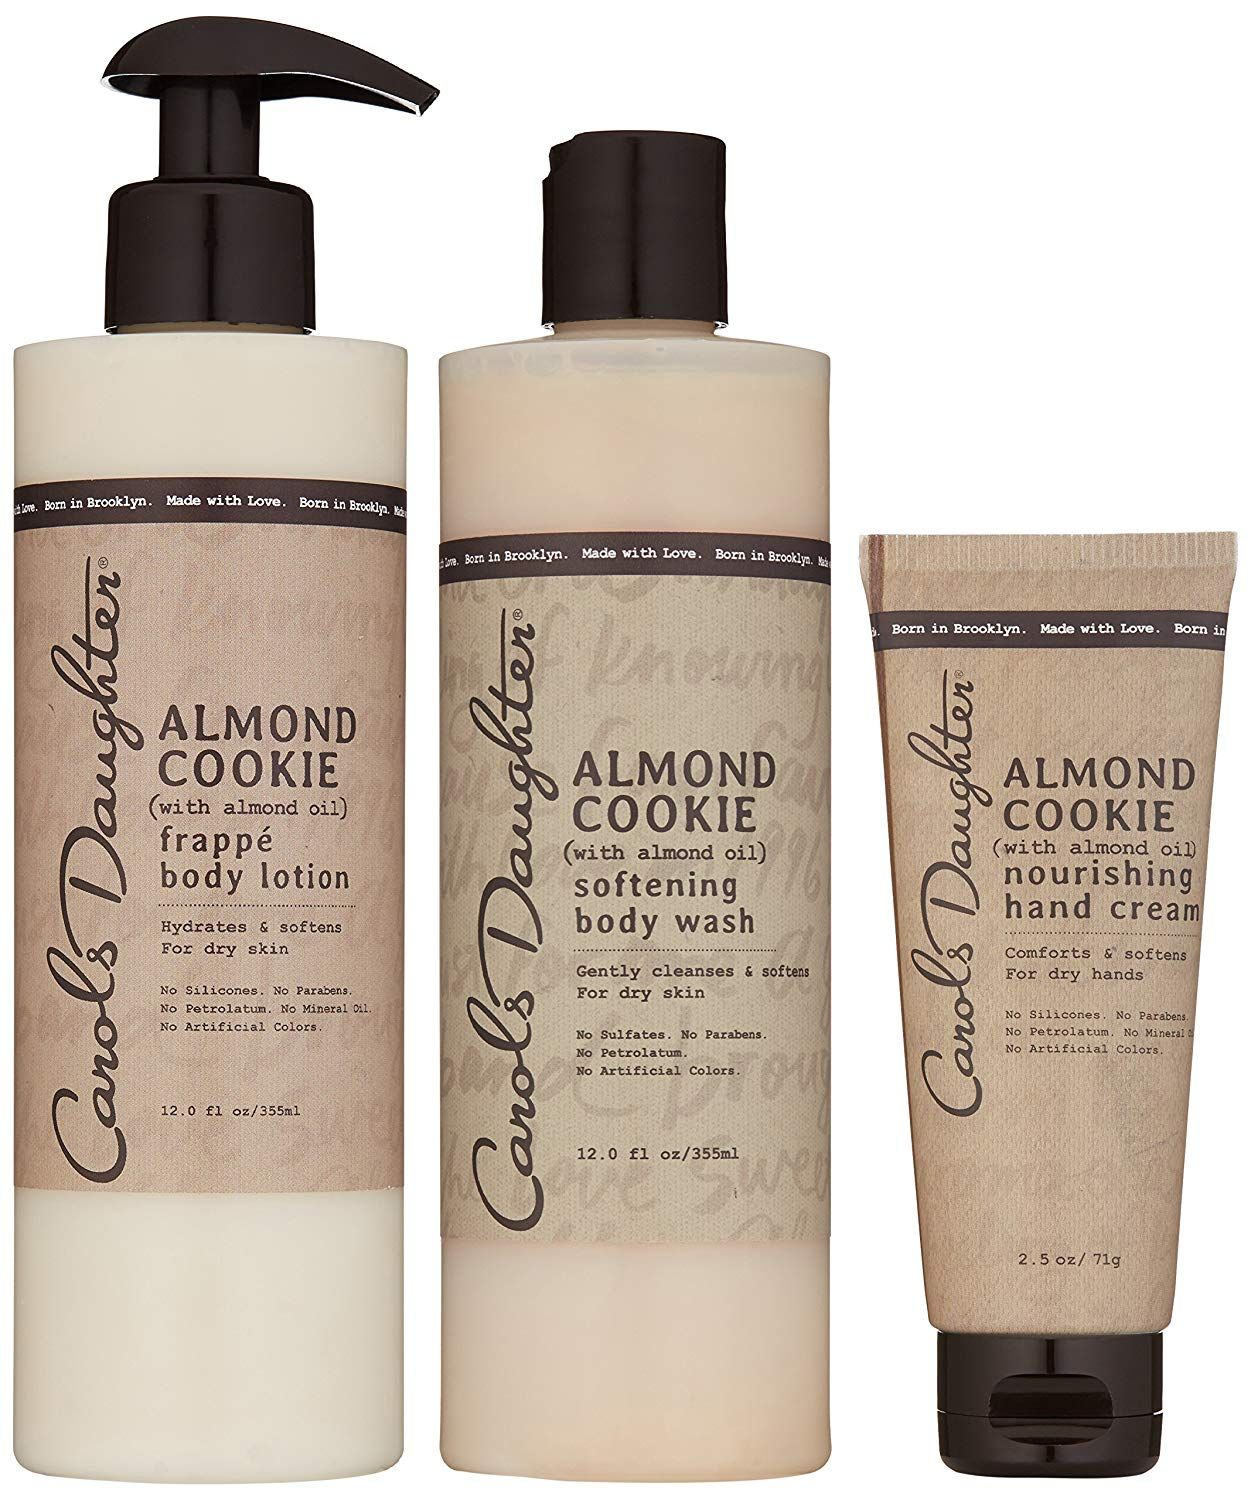 Carols Daughter Almond Cookie Body Gift Set For Dry Skin Carols Daughter Products Sulfate Free Body Wash Cream For Dry Skin